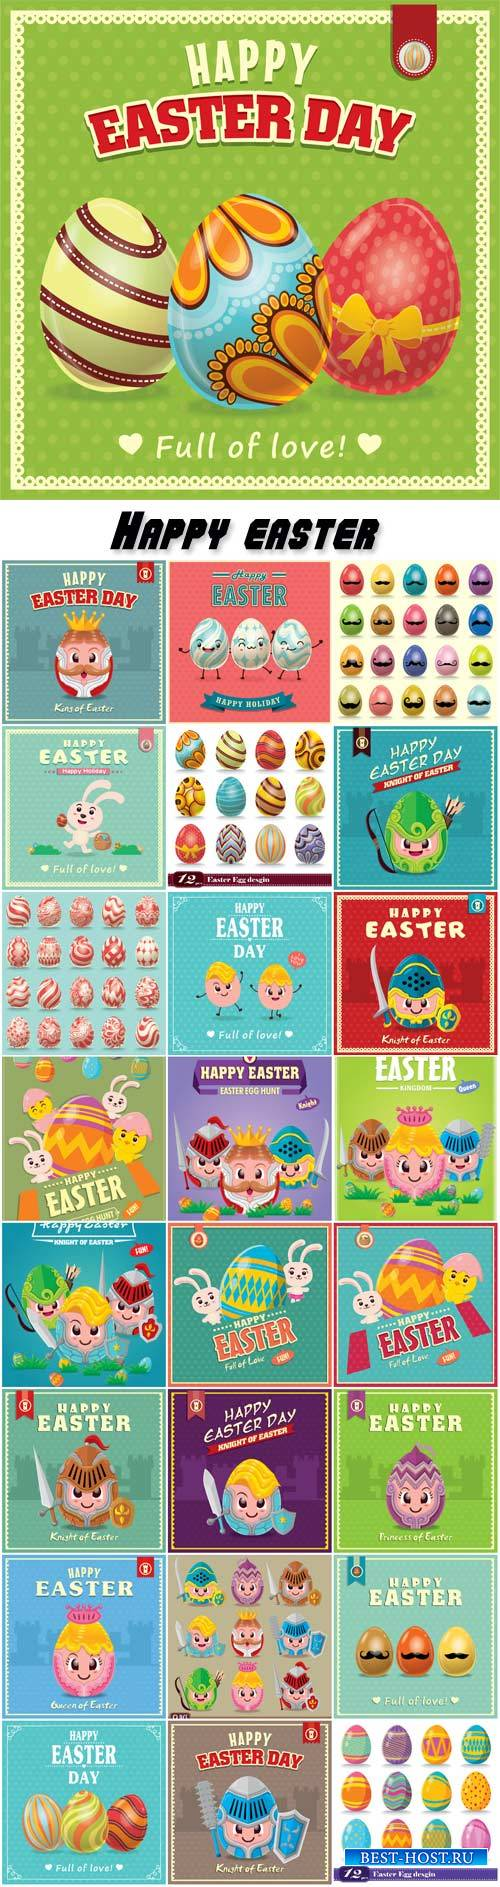 Vintage Easter egg poster design